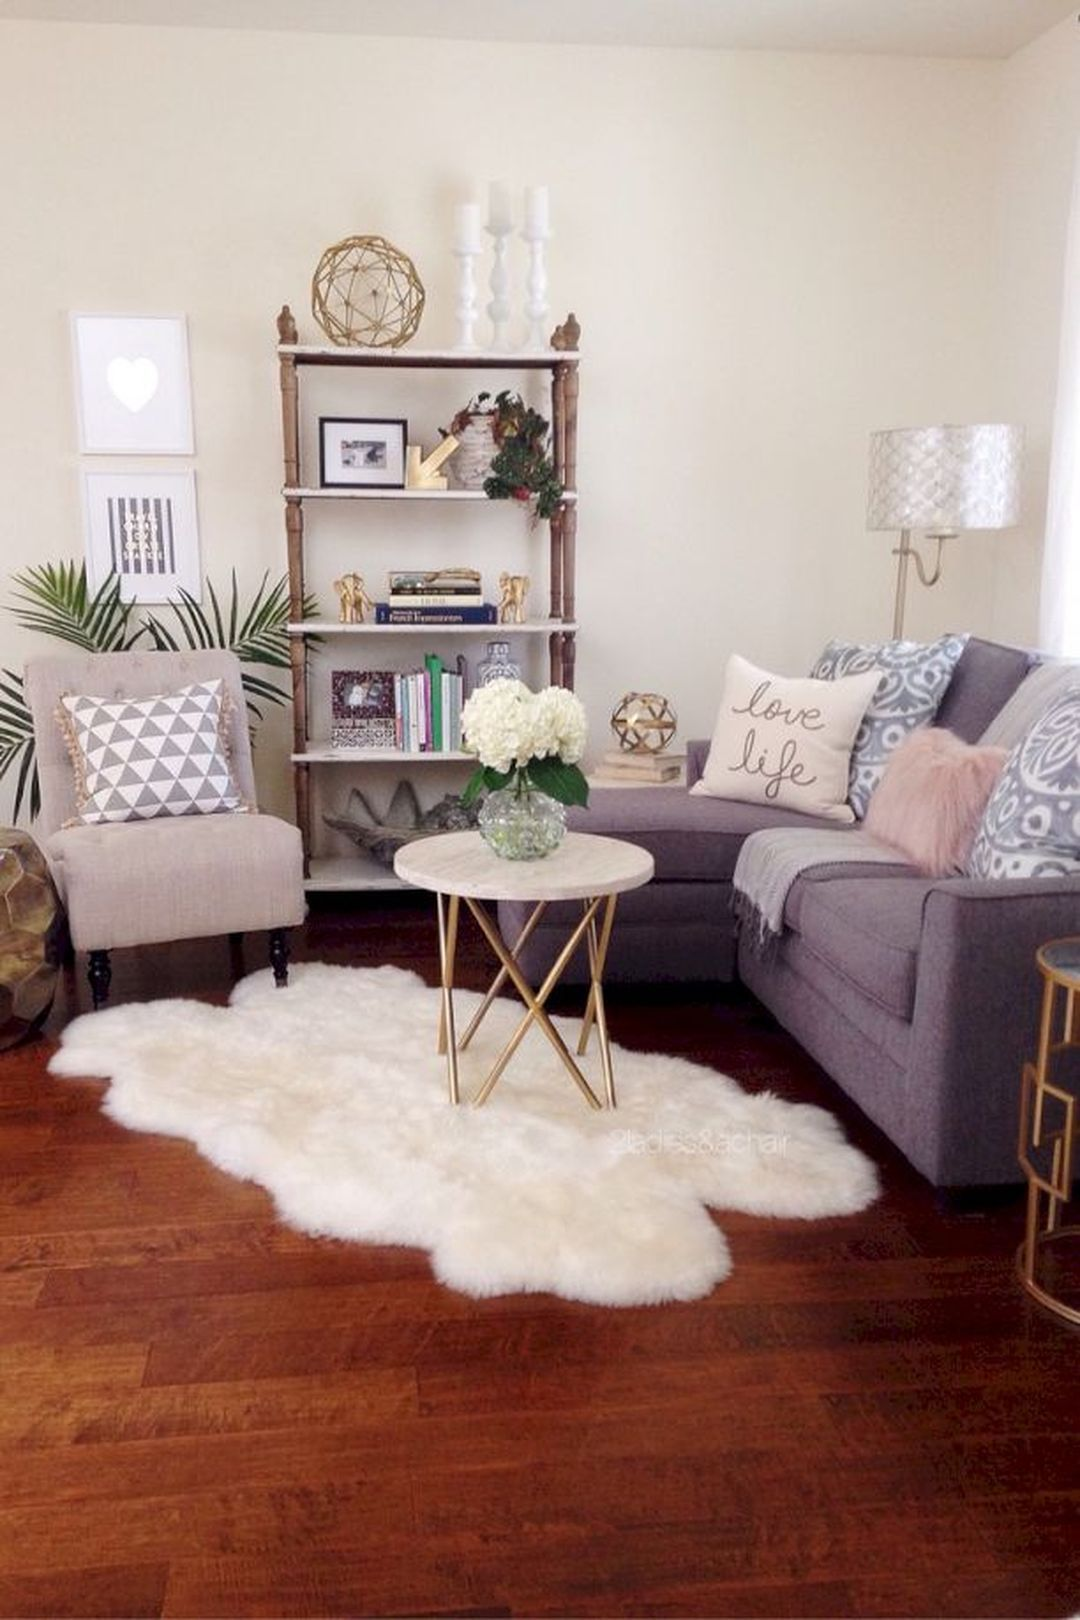 New Apartment Decorating Ideas On A Budget (21)